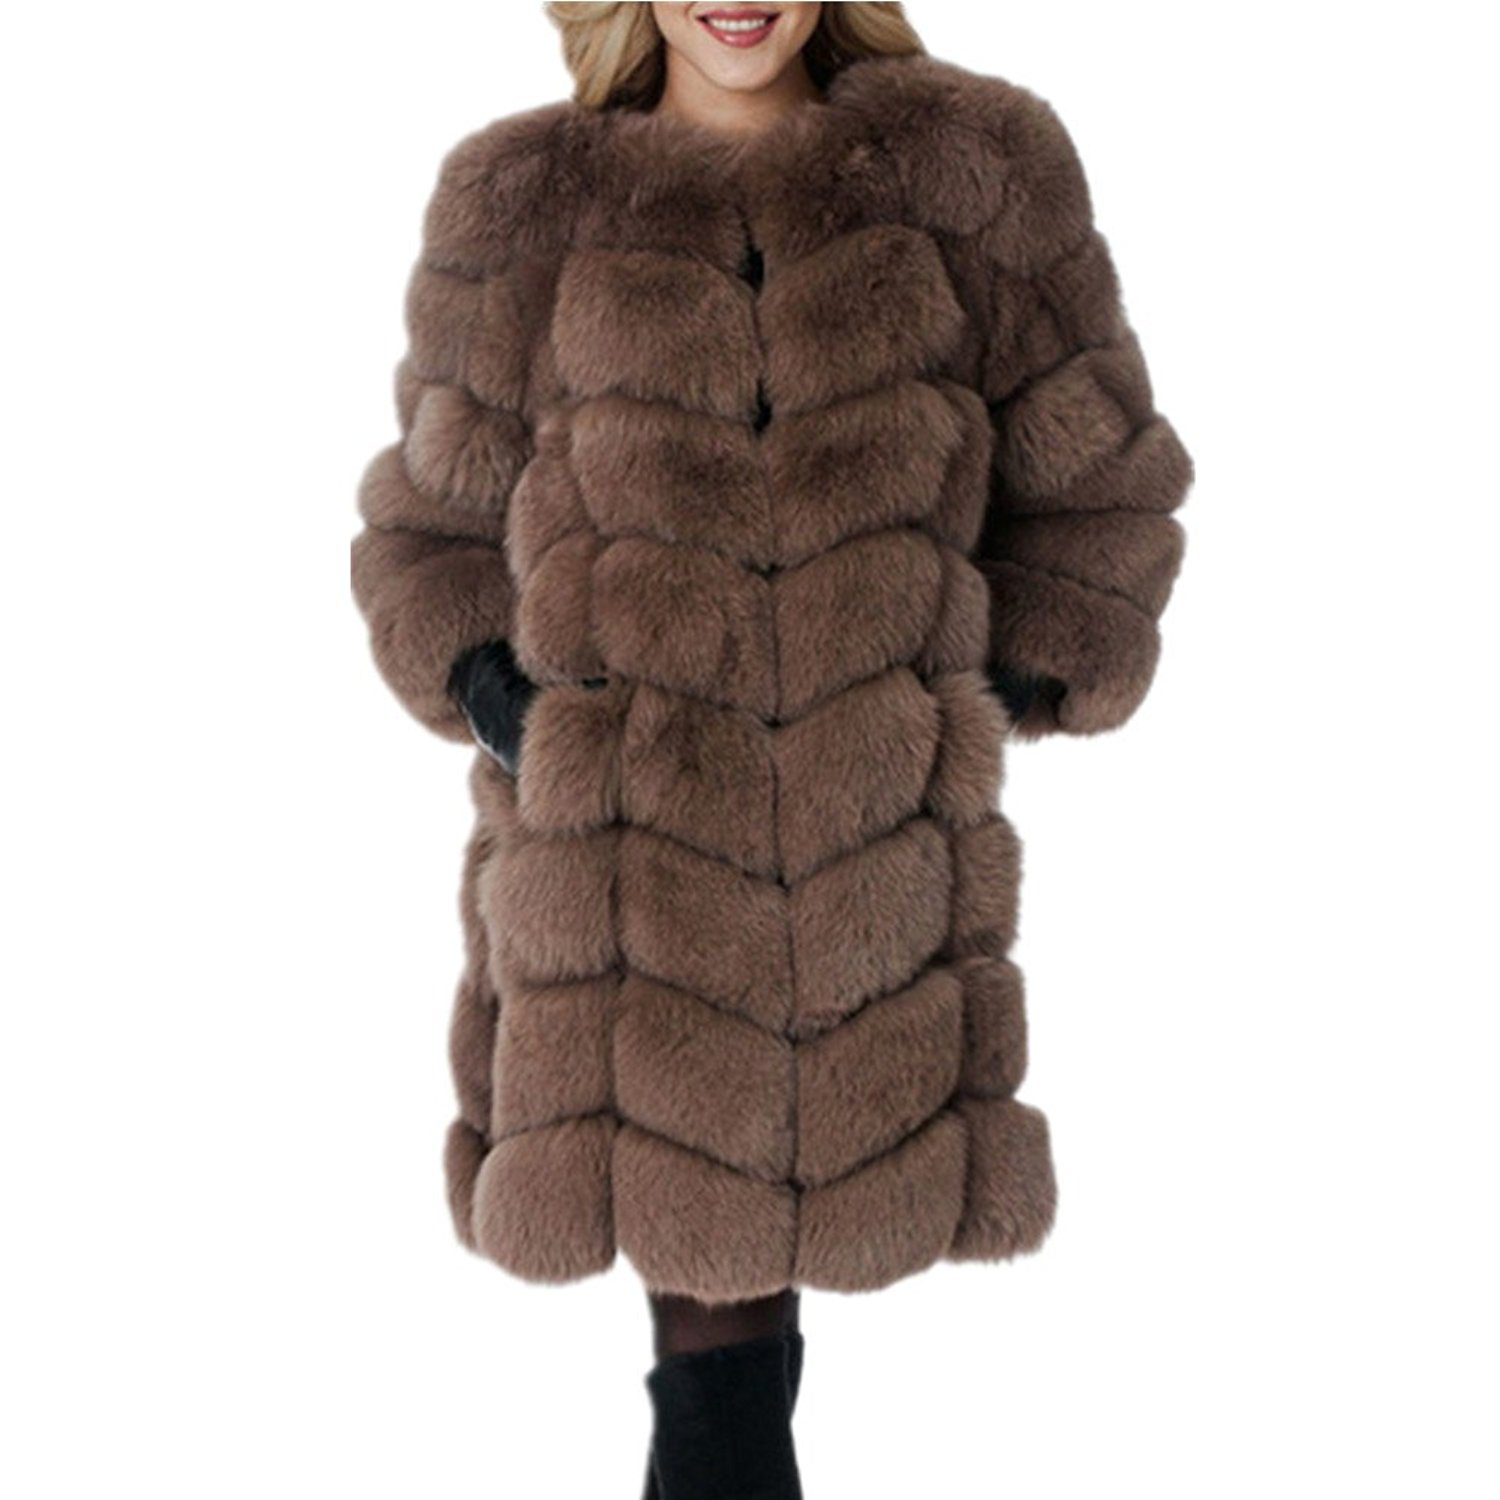 Women Long Fake Fox Fur Jacket Coat Winter Warm Faux Fox Fur Jackets Outwear Furry Fur Coat